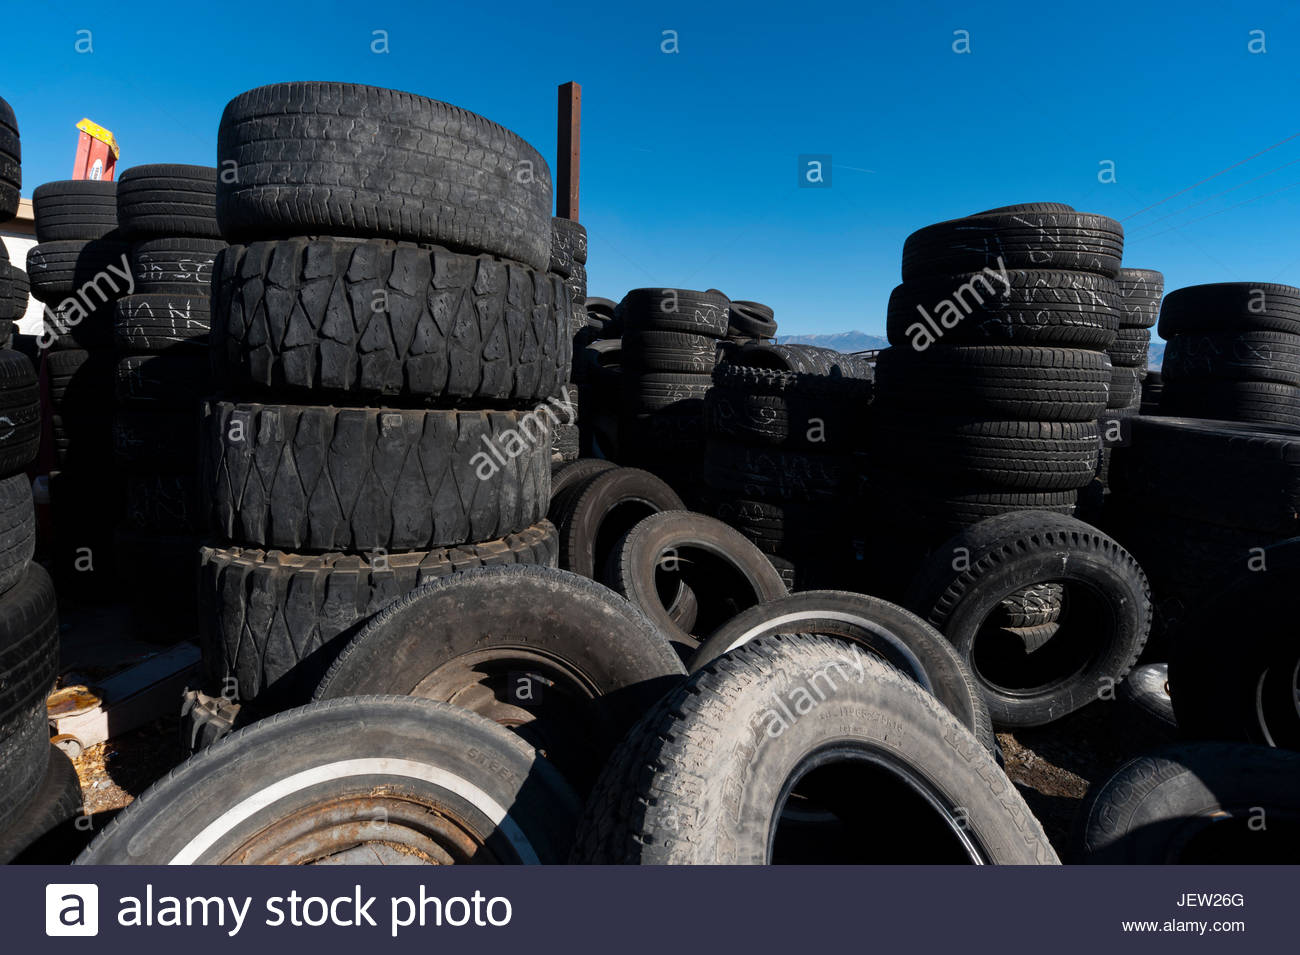 Stacks and piles of old tires designated for recycling. - Stock Image